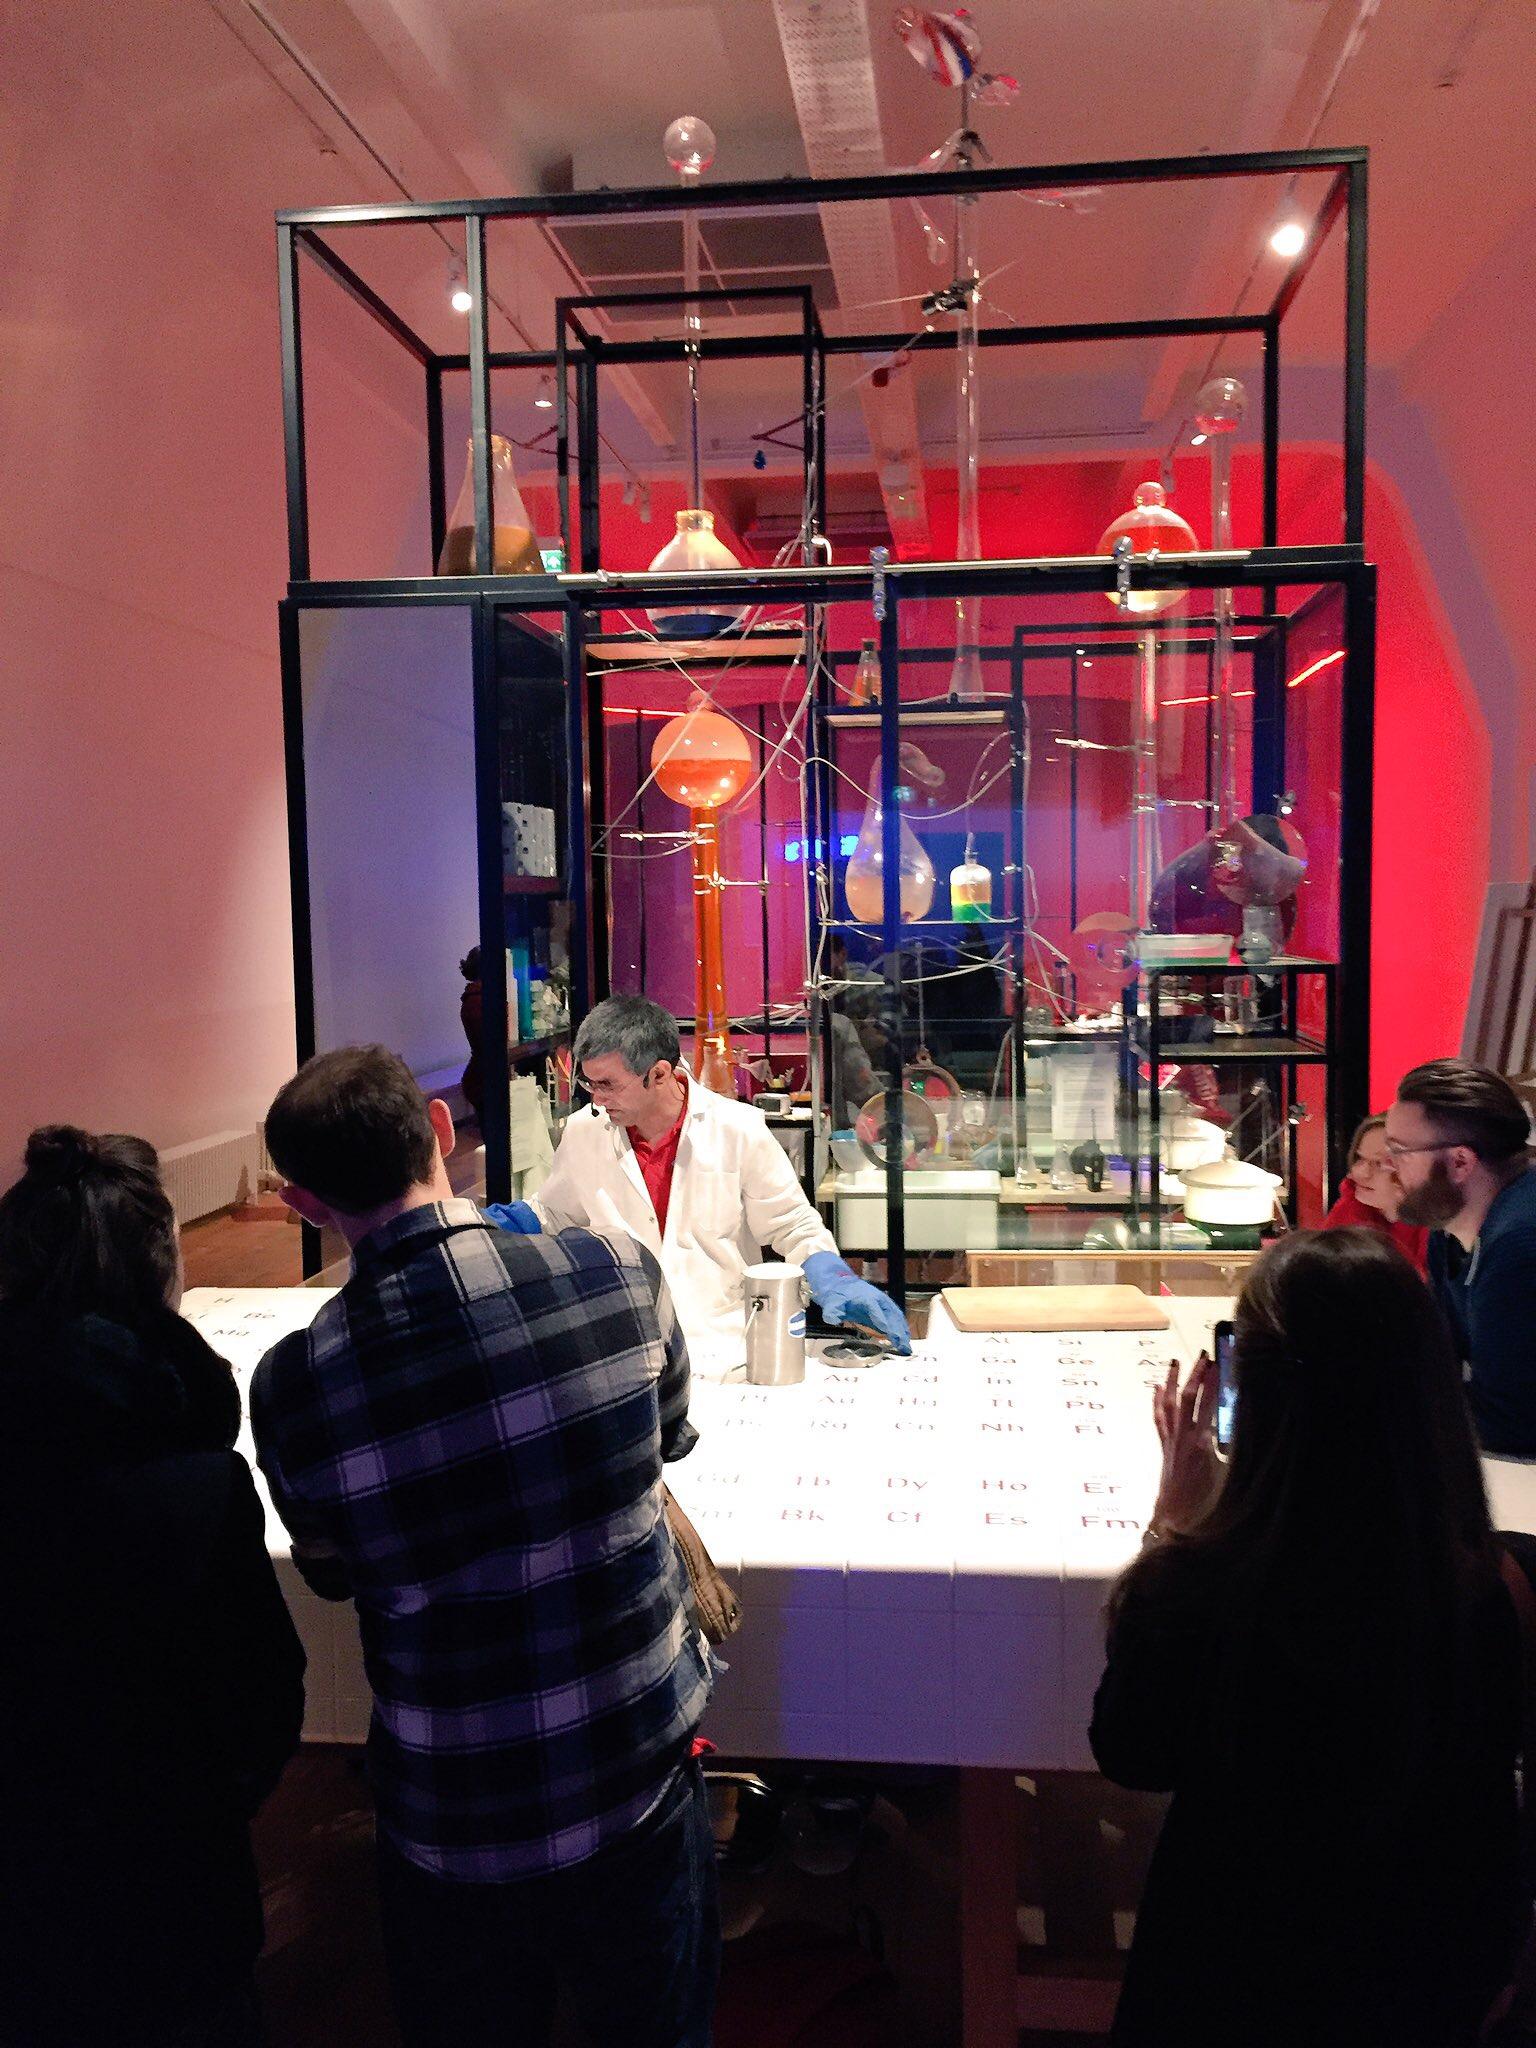 The Wonderlab at the Science Museum